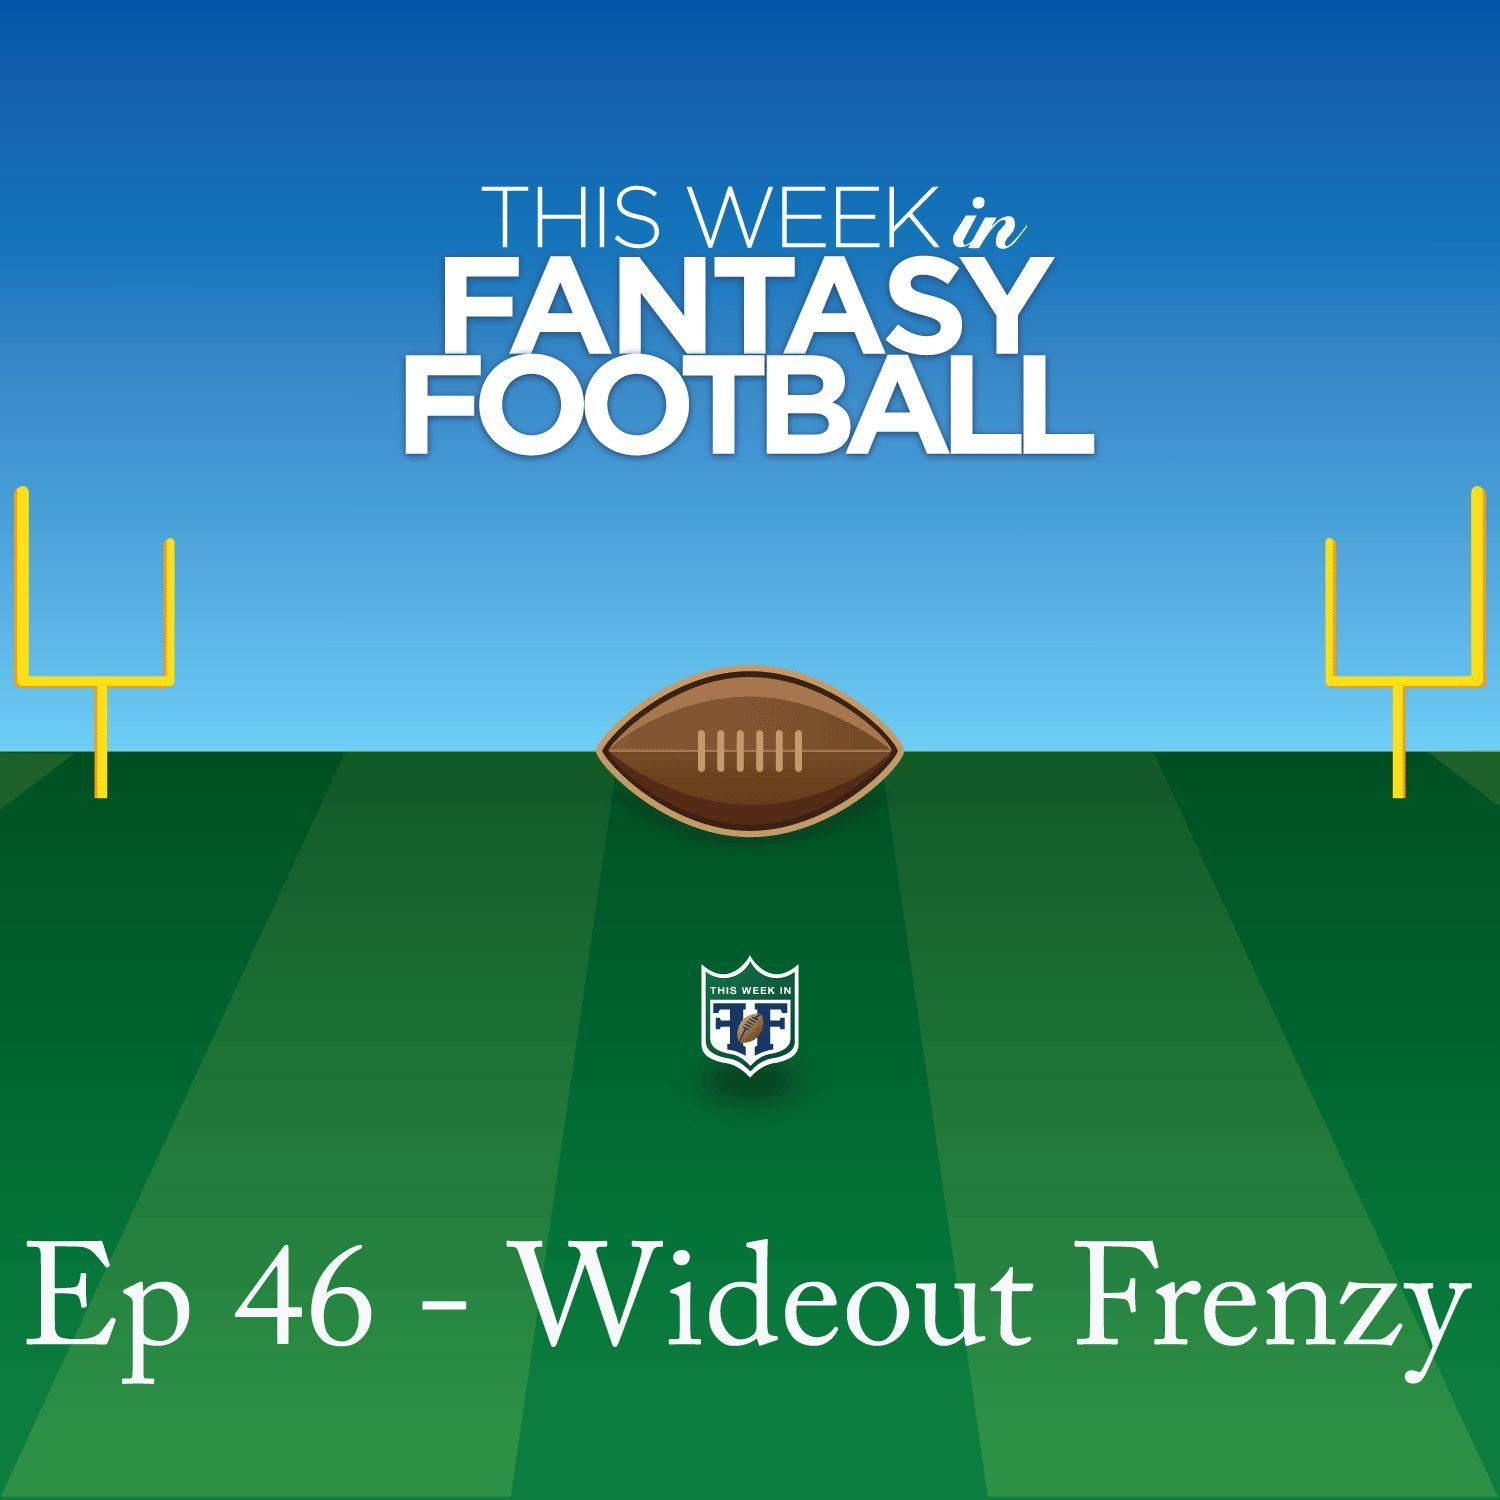 Ep 46 - Wideout Frenzy